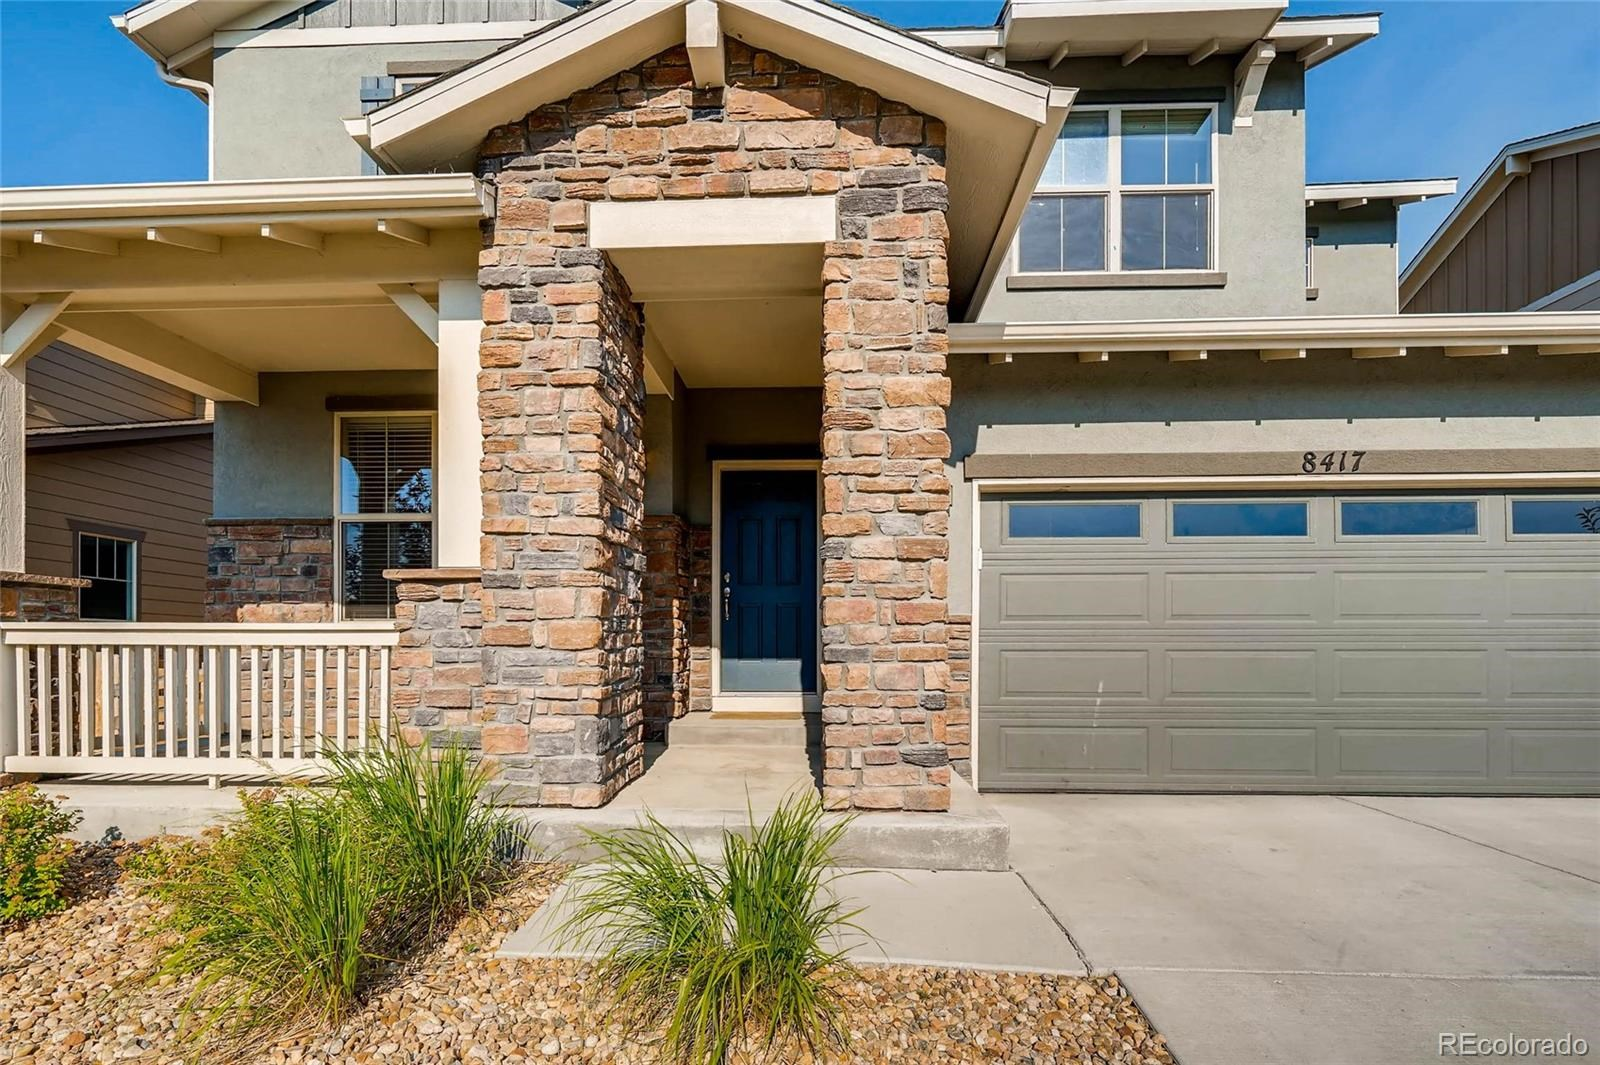 MLS# 9908846 - 3 - 8417 Wilkerson Court, Arvada, CO 80007